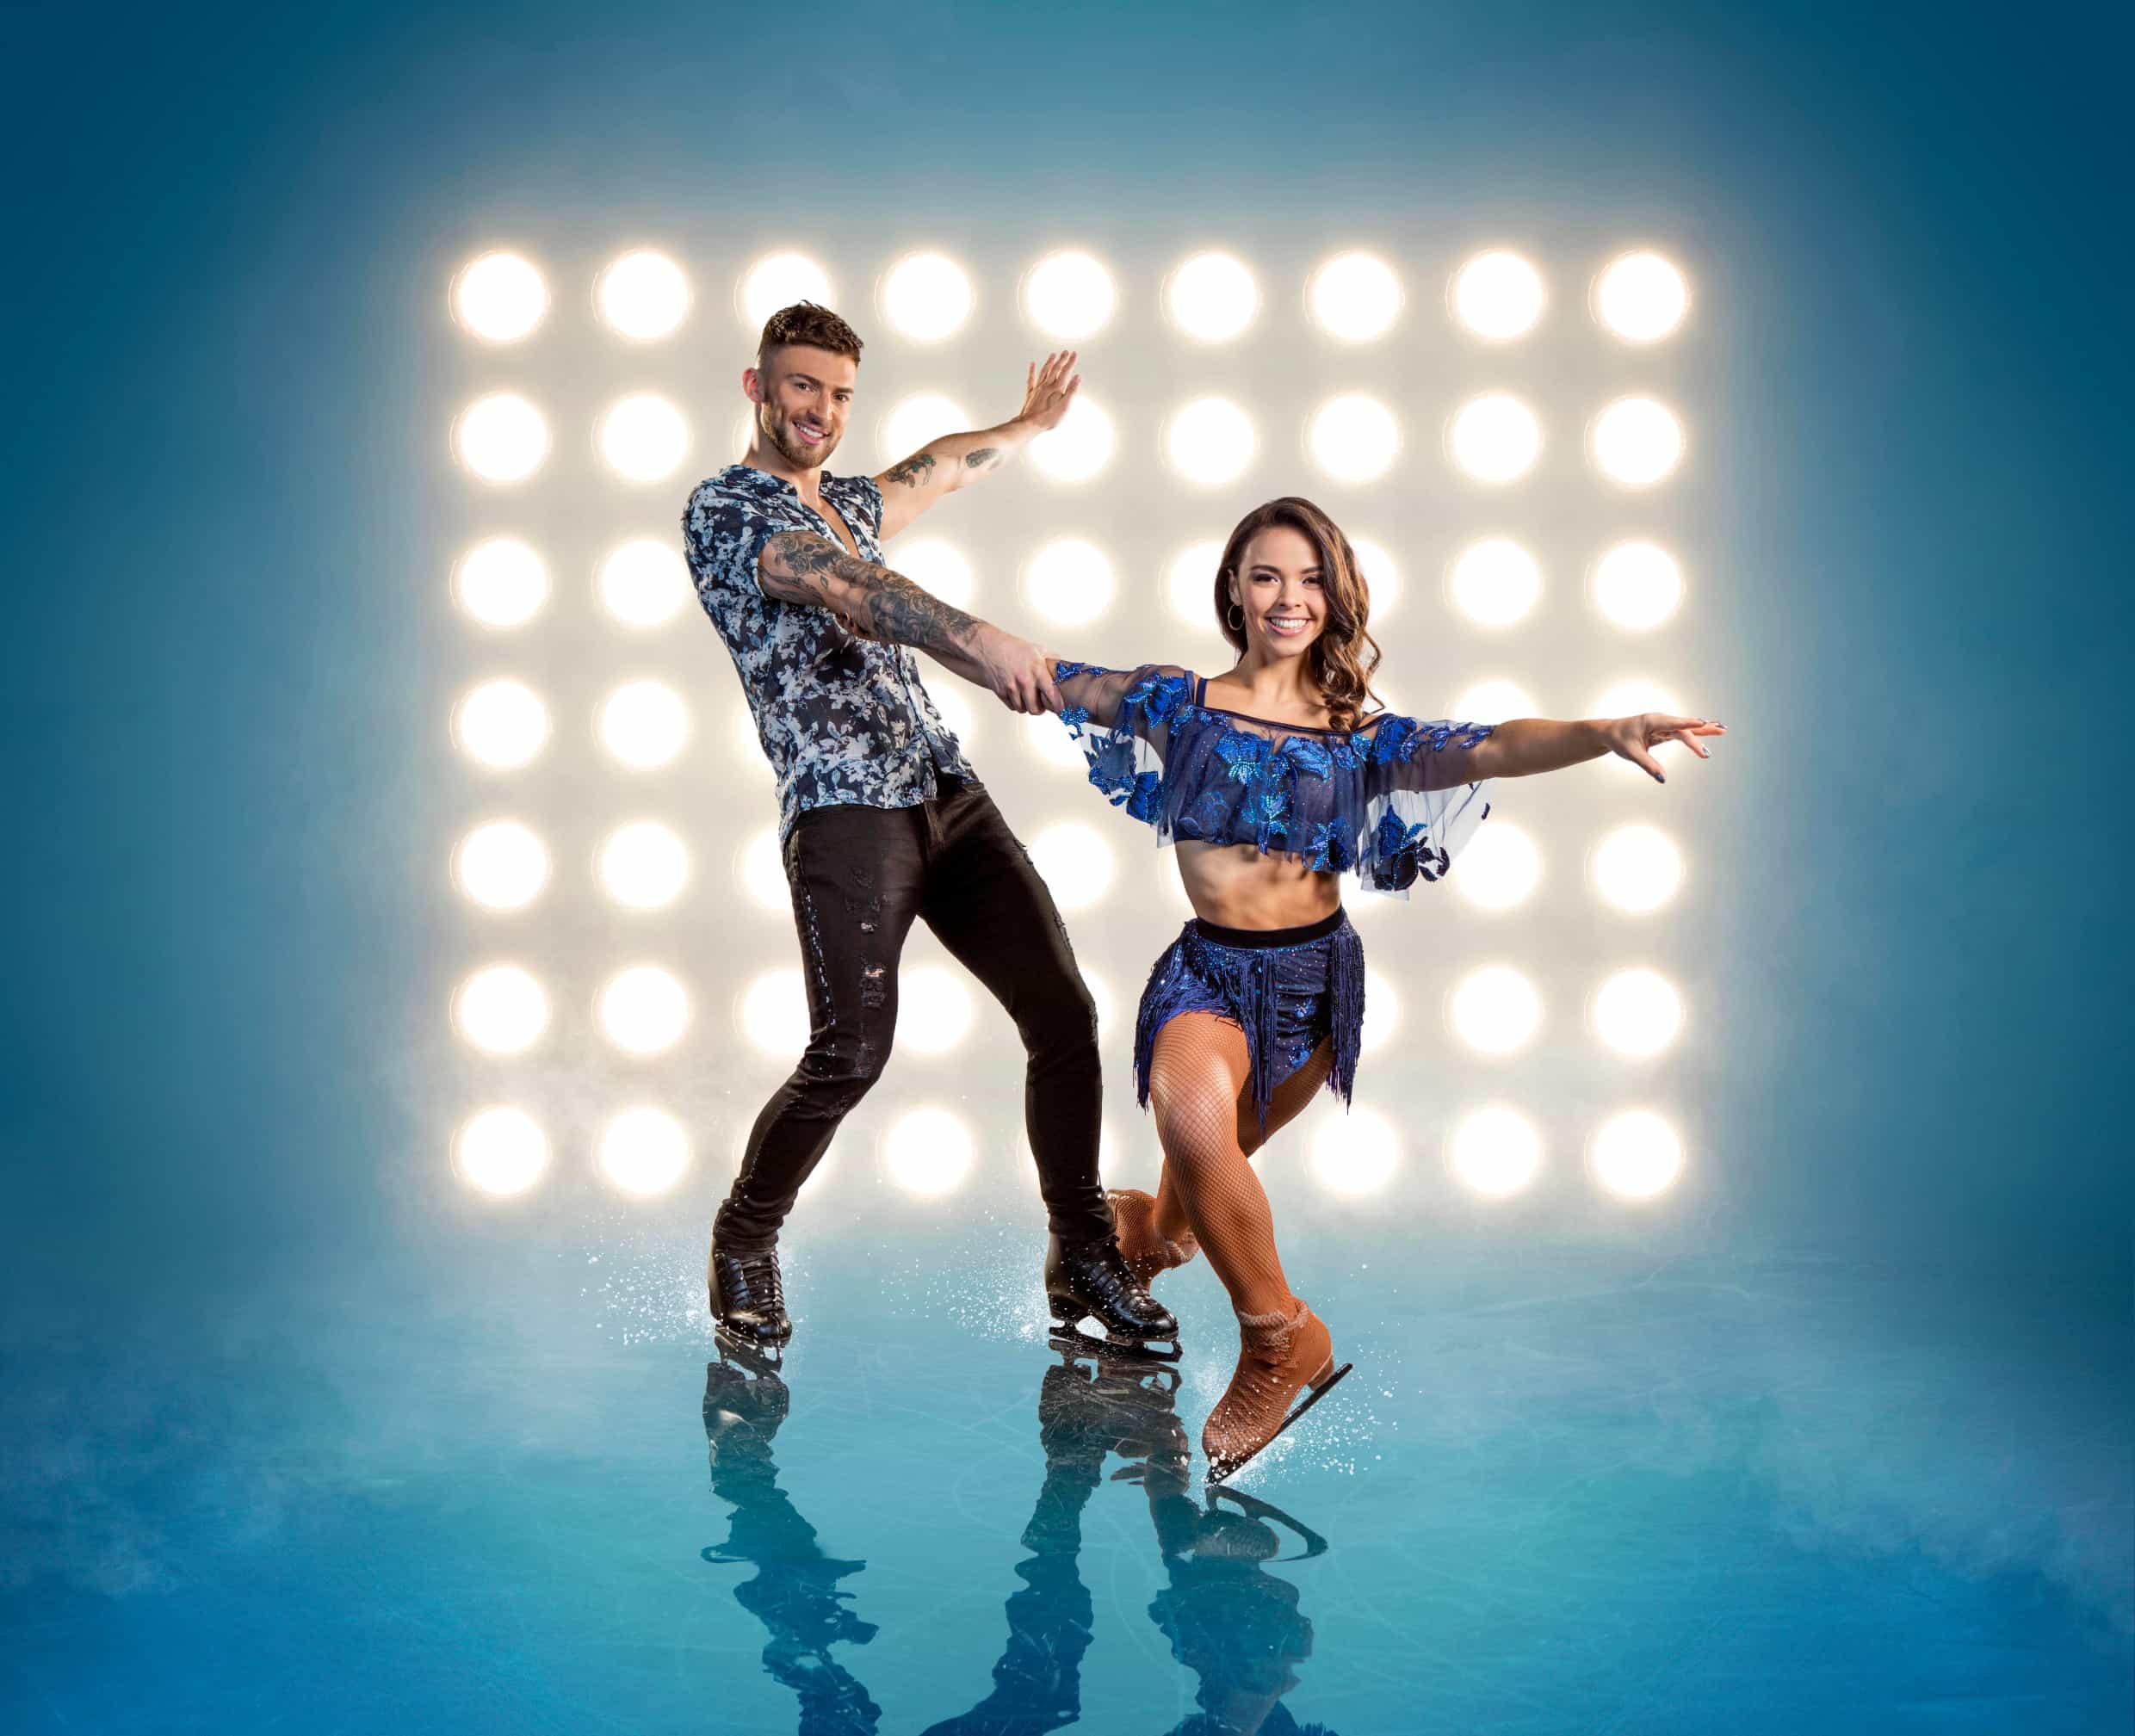 Jake Quickenden and Vanessa Bauer win Dancing On Ice 2018 ...